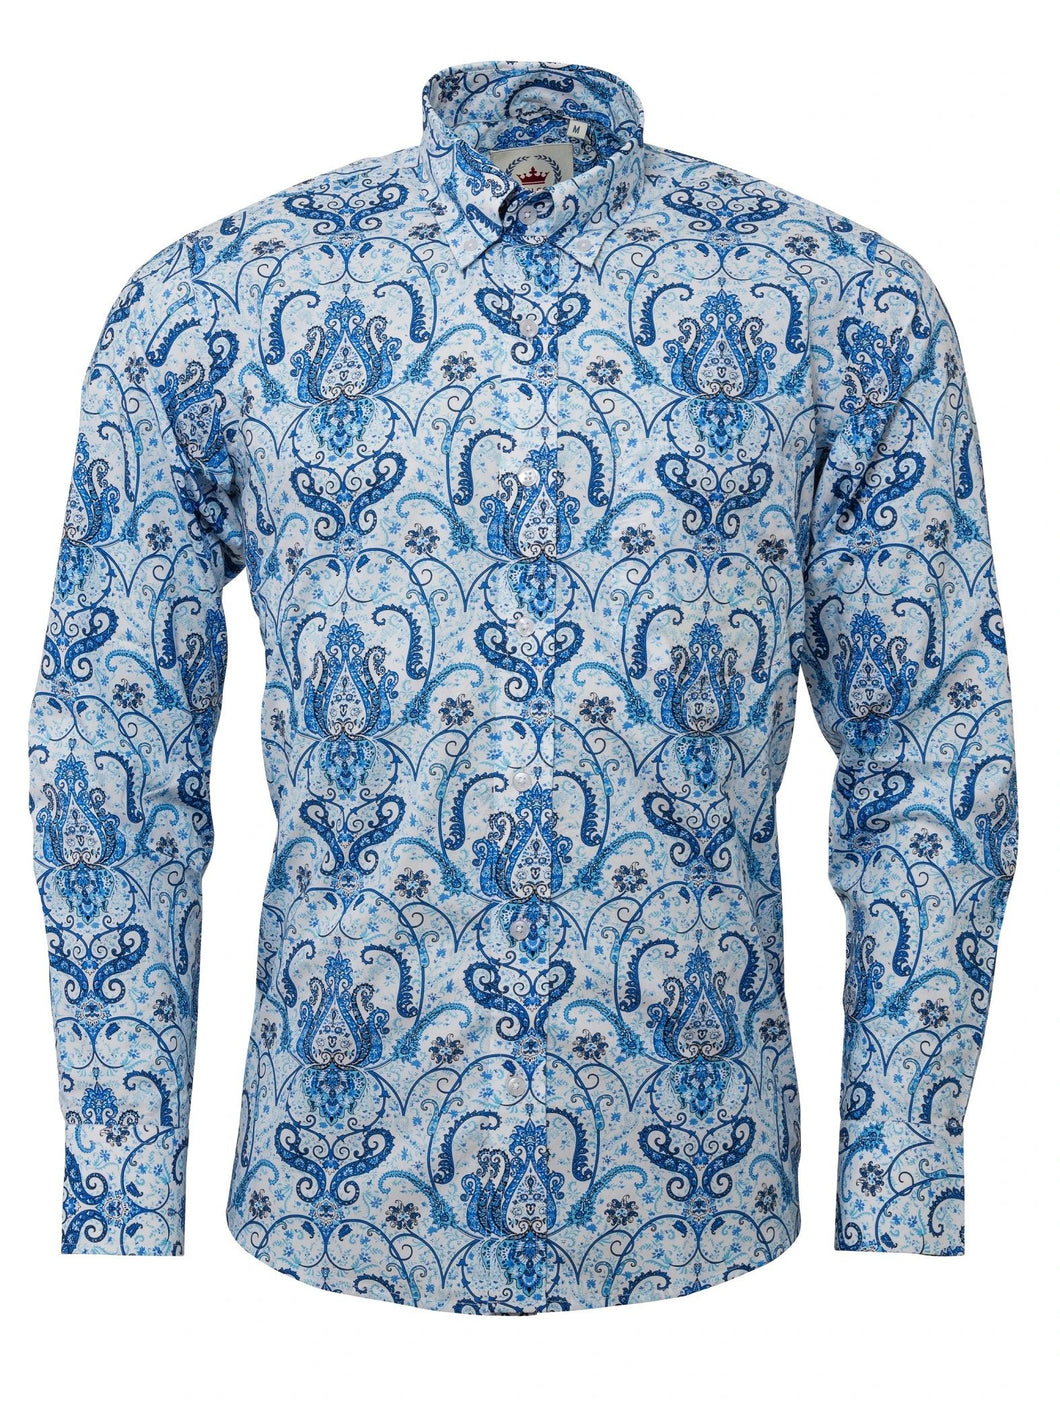 Blue & White Patterned shirt - PS 23